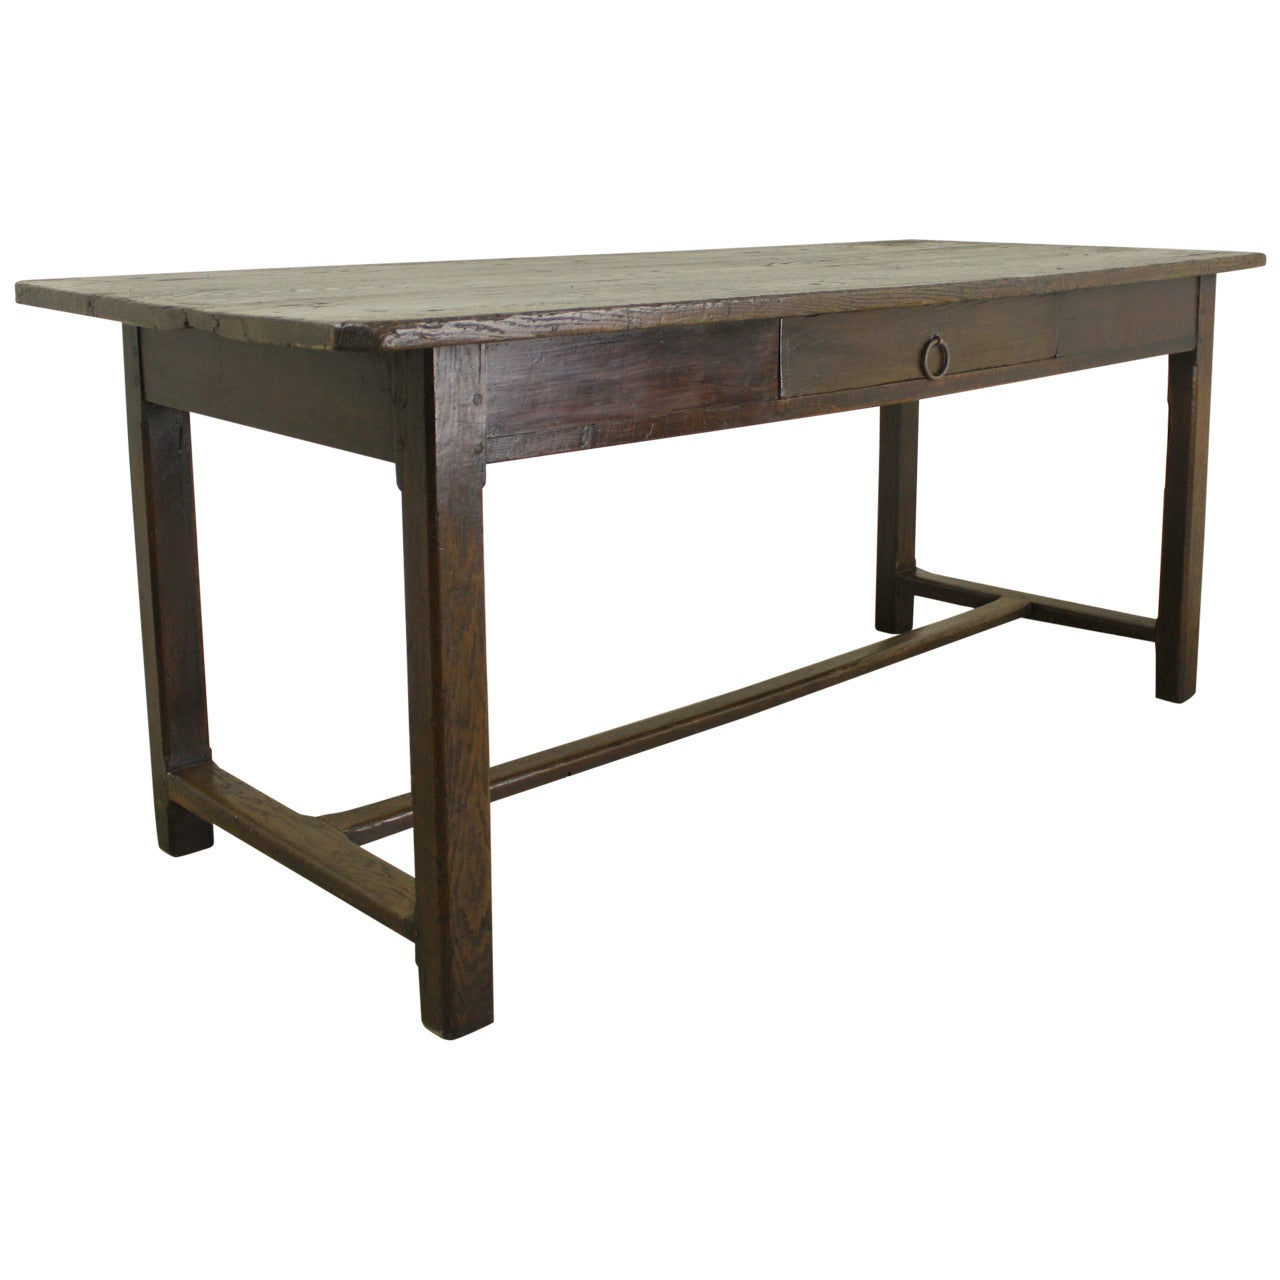 Rustic Chestnut Farm Table on a Stretcher Base